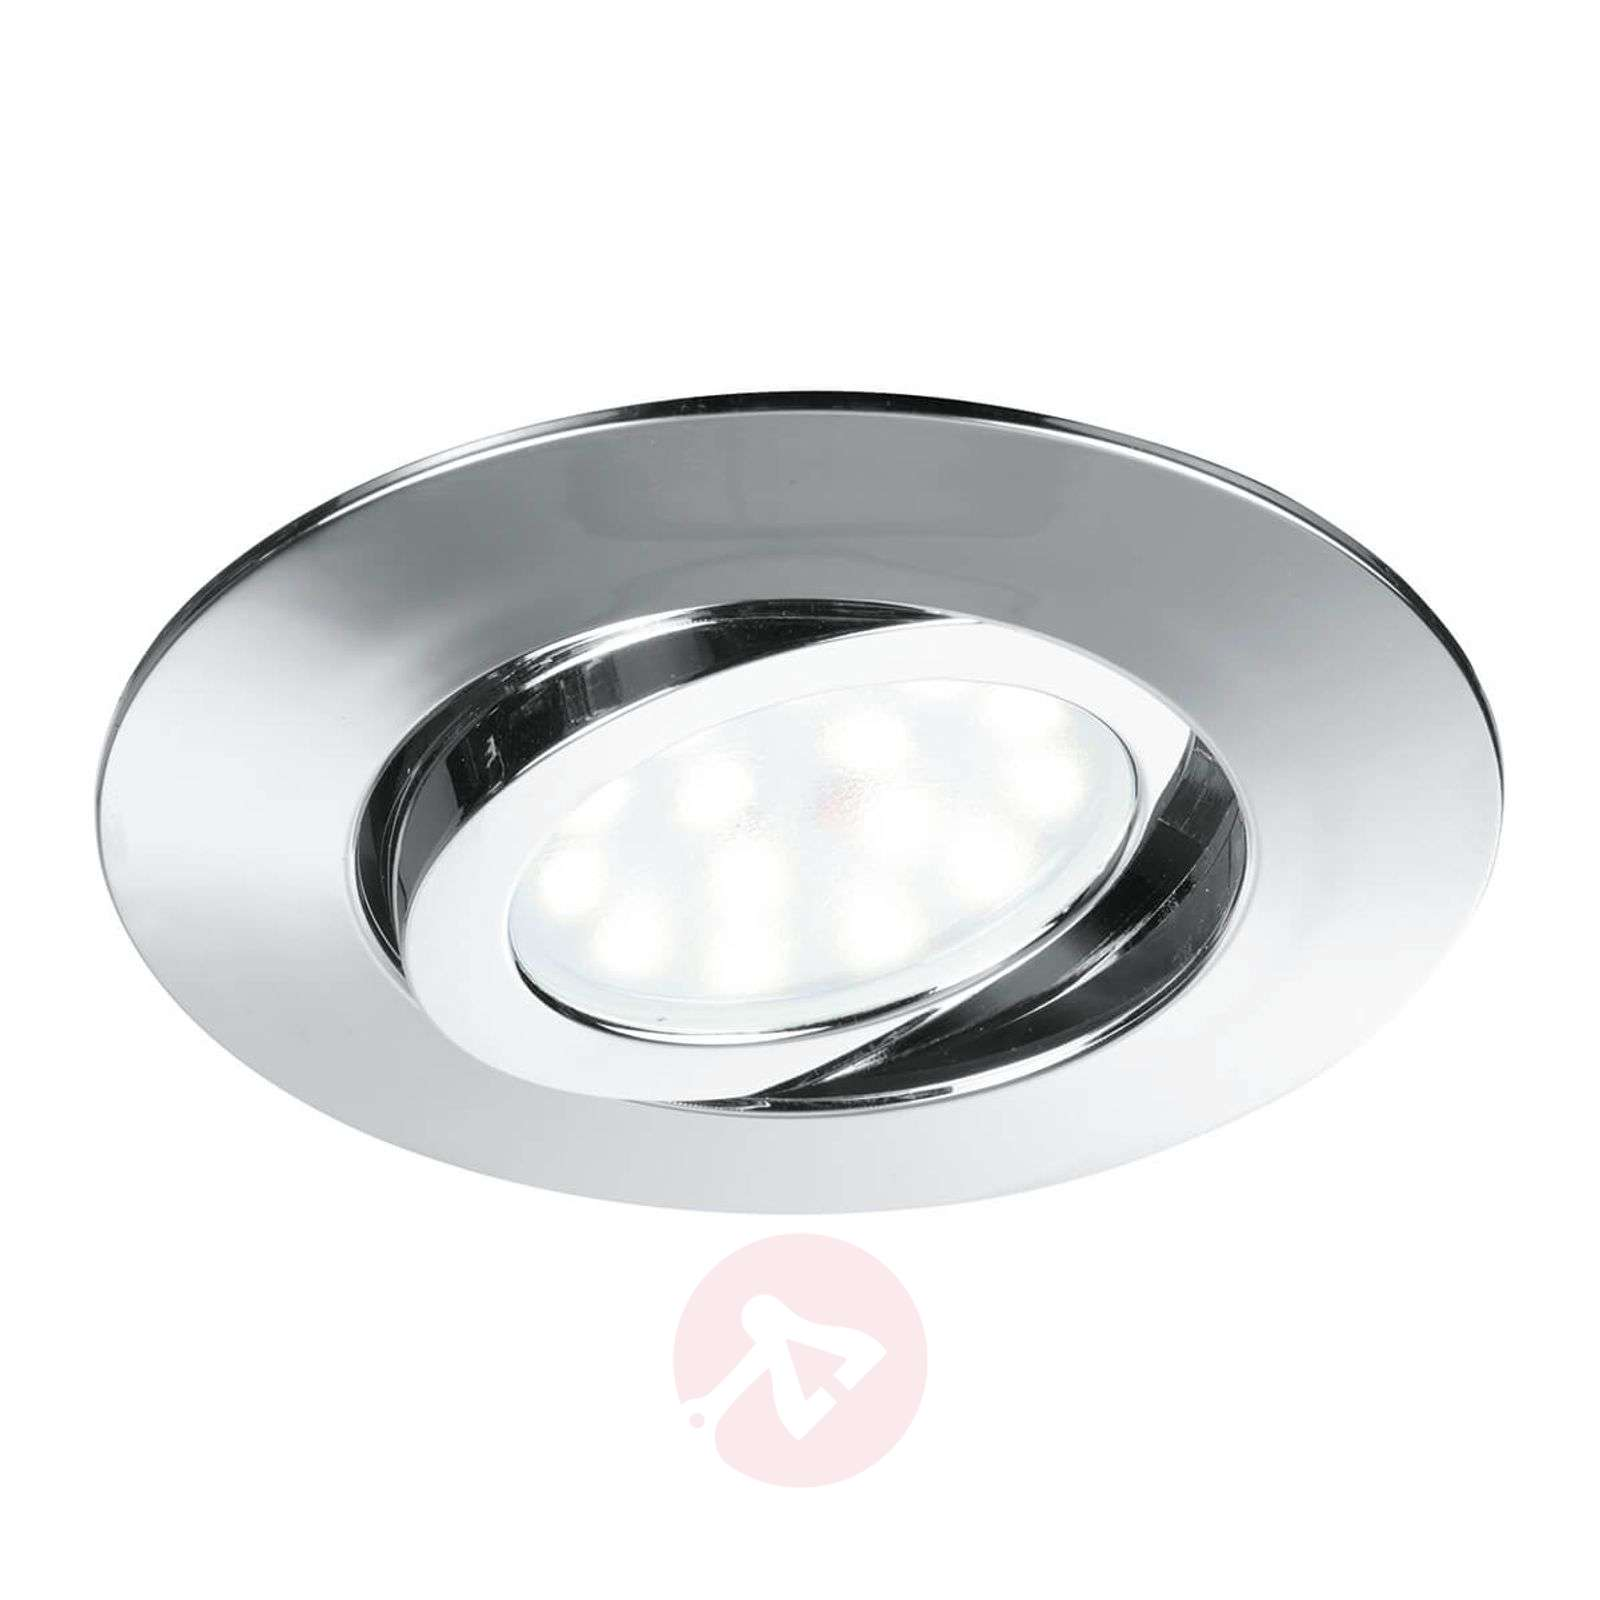 LED recessed ceiling spotlight Zenit chrome | Lights.co.uk